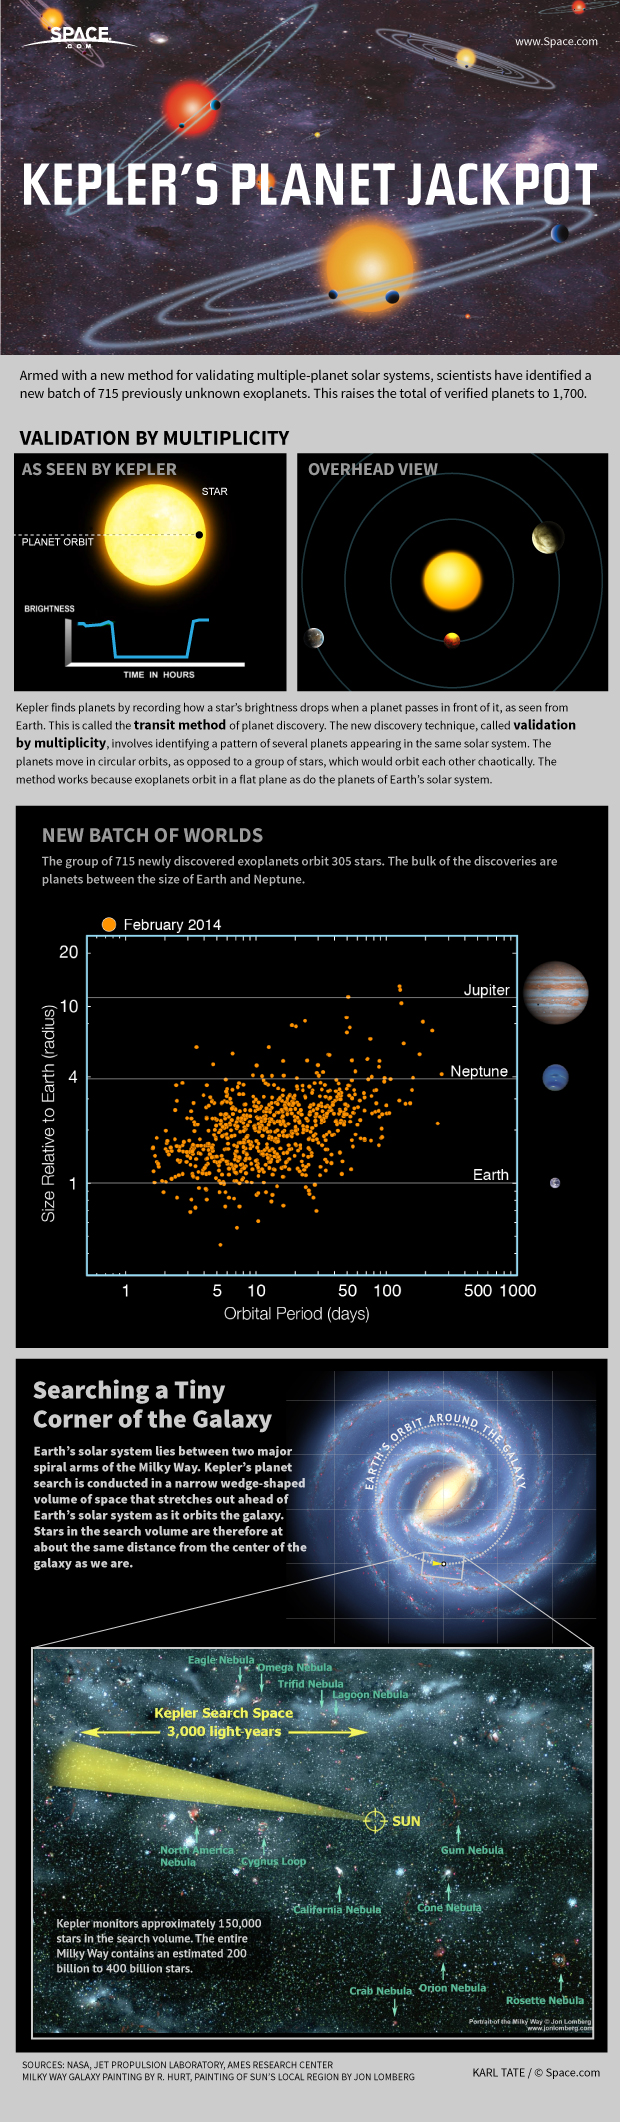 Kepler Space Telescope's Alien Planet Bonanza Explained (Infographic)